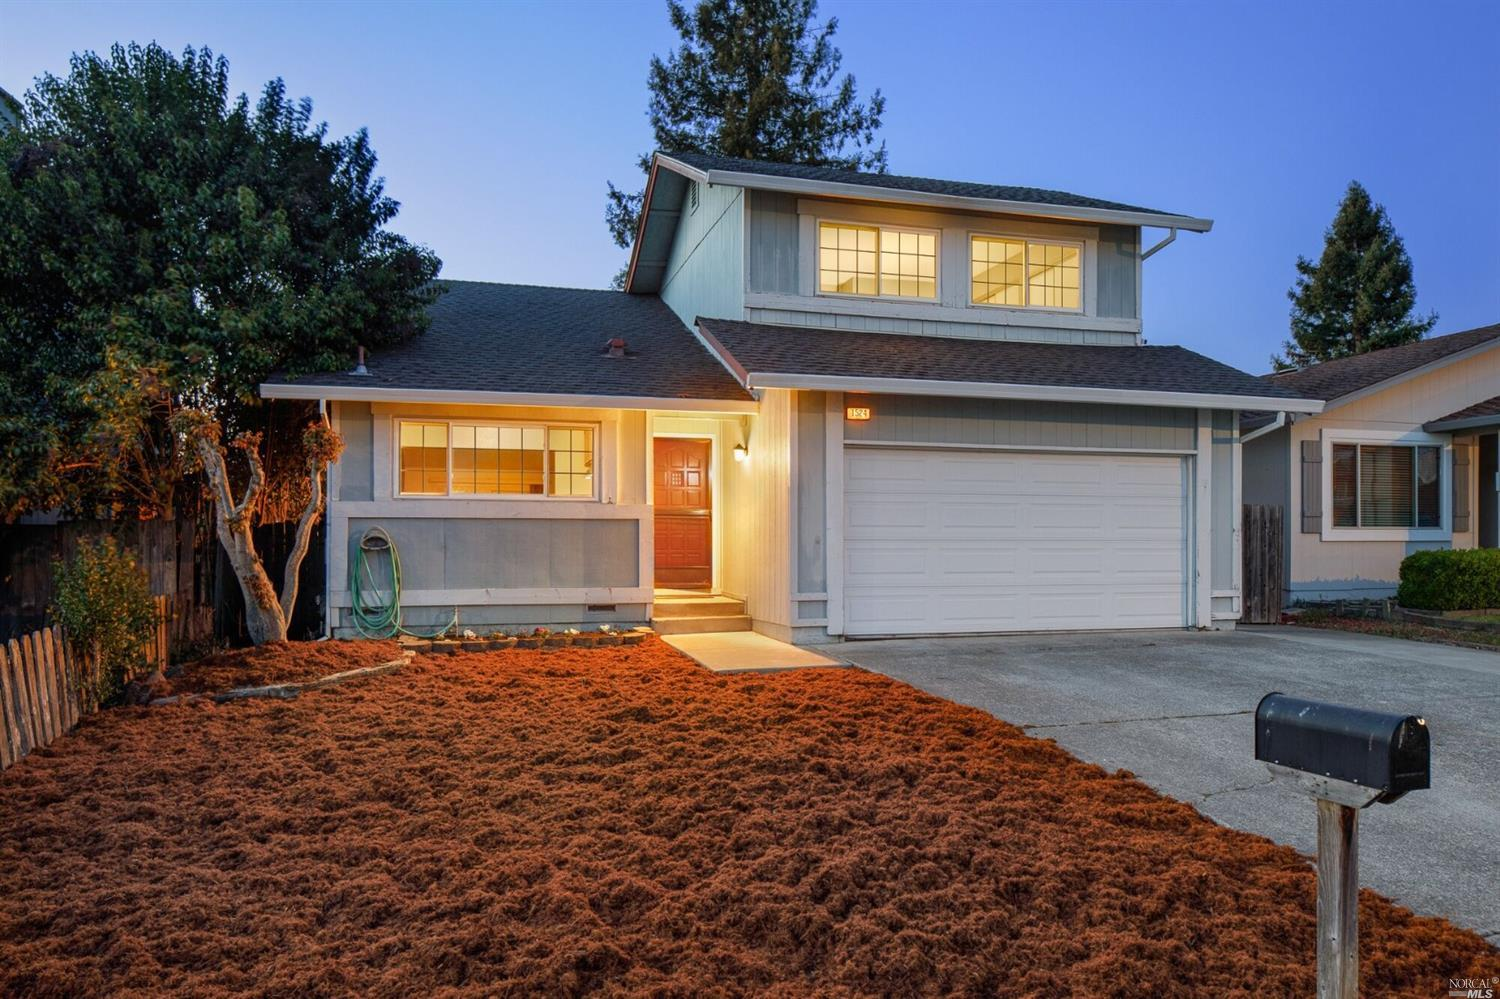 Located in Popular G'' Section of Rohnert Park, this 3 bedroom home offers 2 bedrooms and a full bat